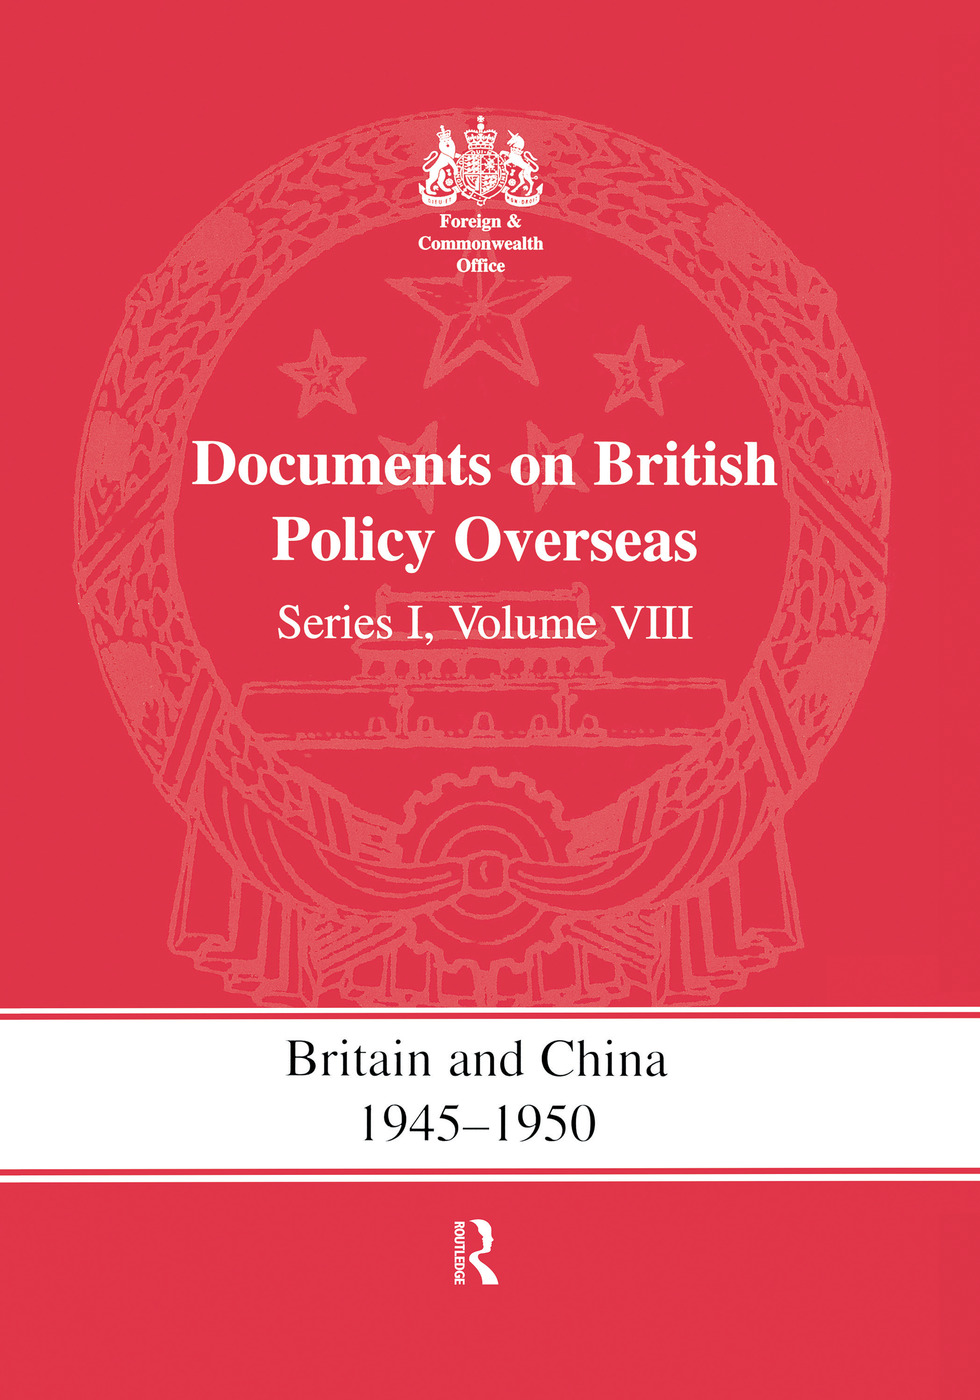 Britain and China 1945-1950: Documents on British Policy Overseas, Series I Volume VIII book cover